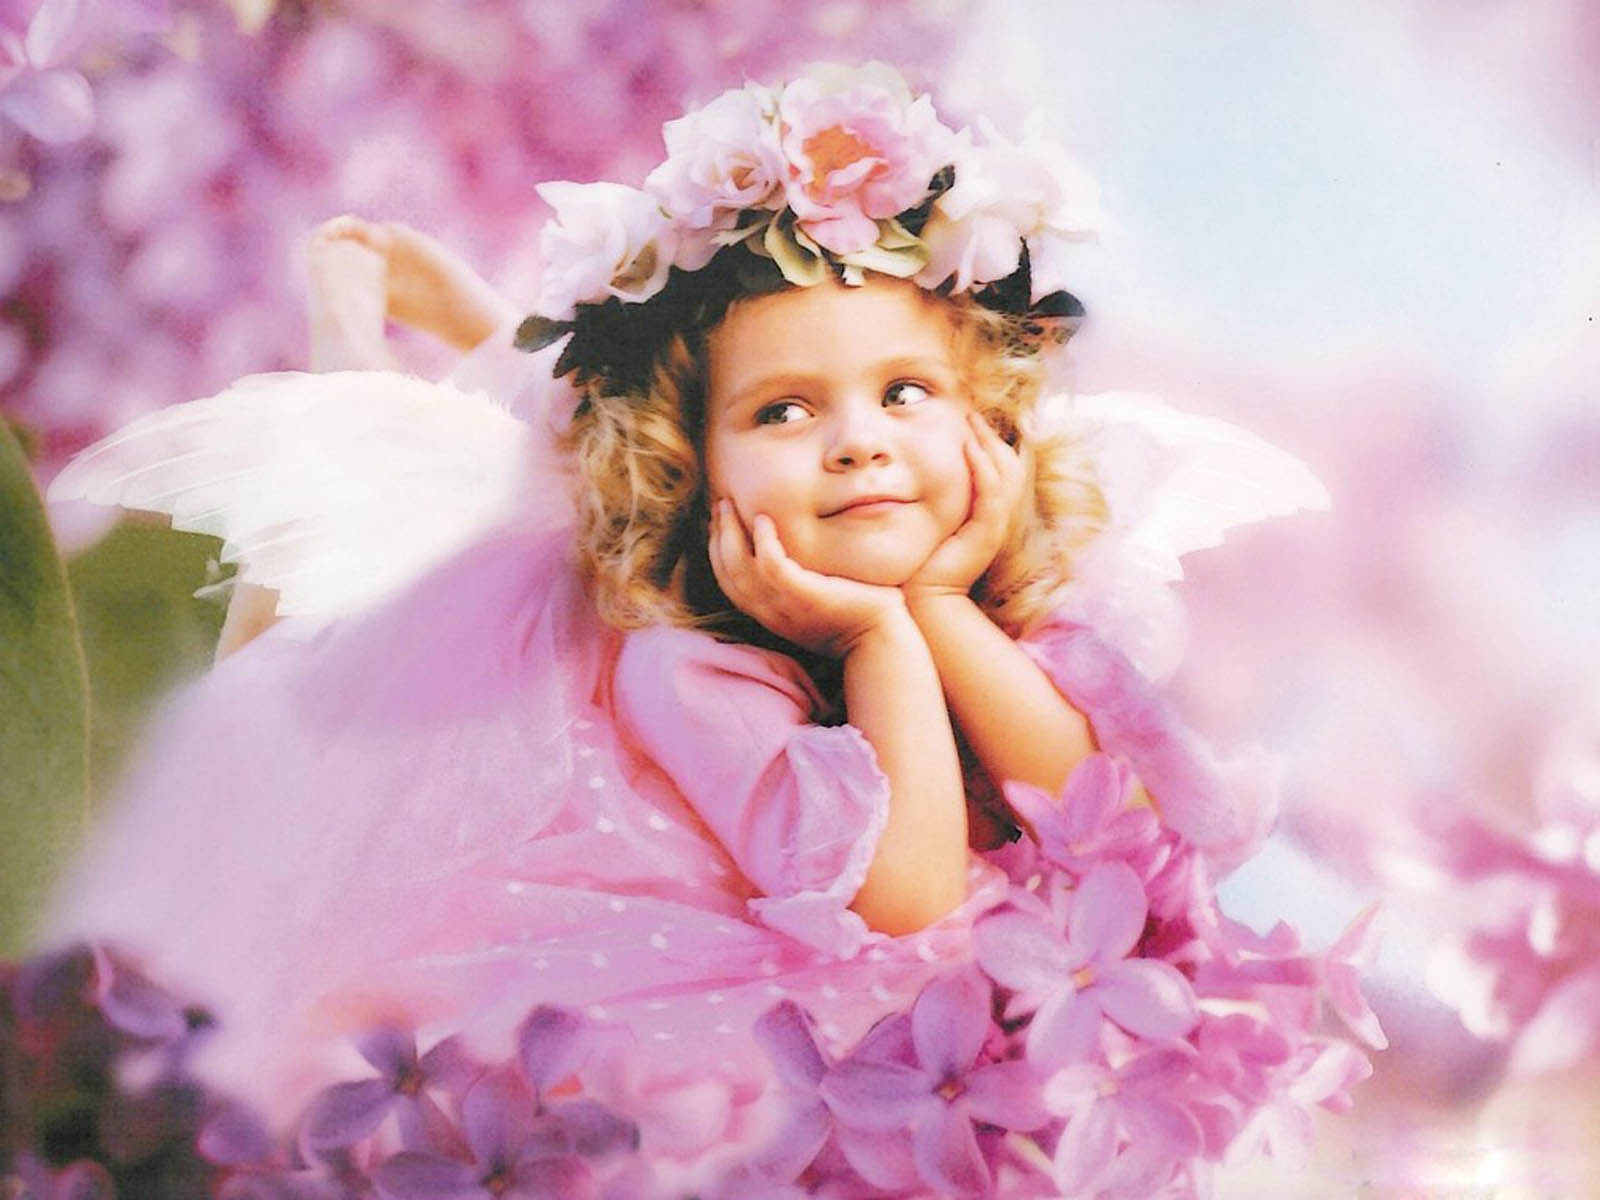 Wallpapers angel babies wallpapers for Belle photo hd